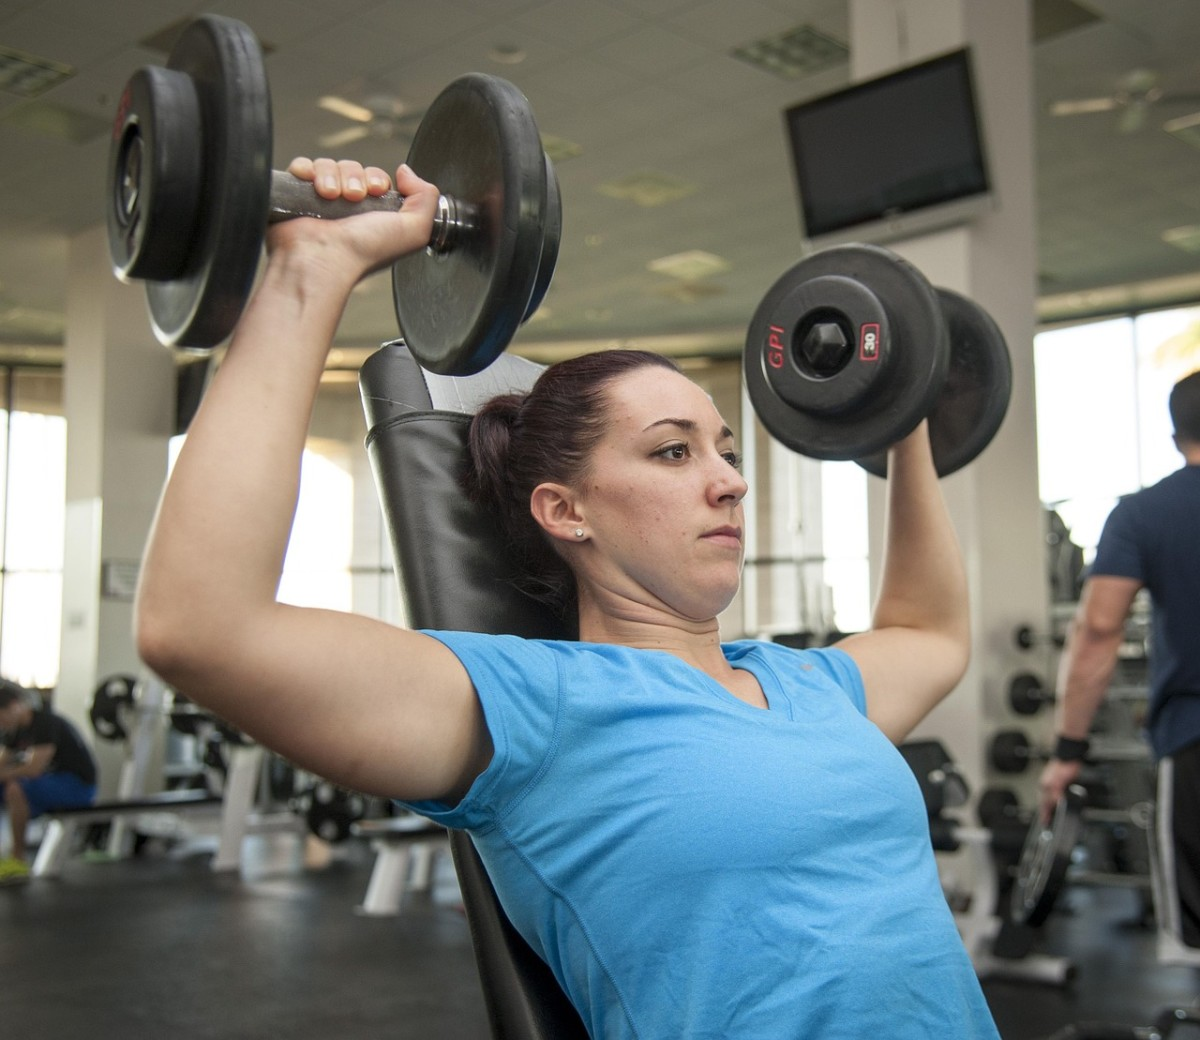 Lifting weights and burning calories will lead to fat loss.